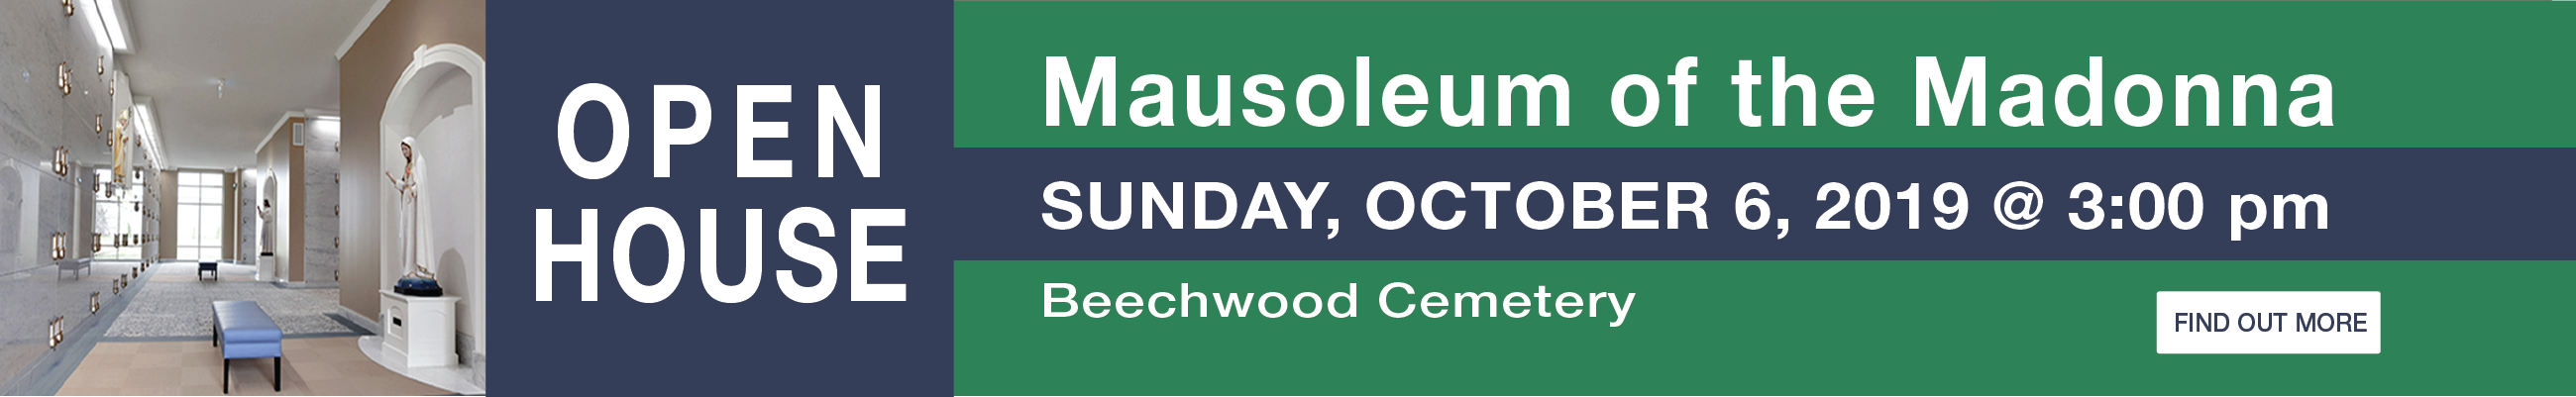 Beechwood Cewmetery Mausoleum of the Madonna Open House Oct. 6, 2019 at 3:00 PM